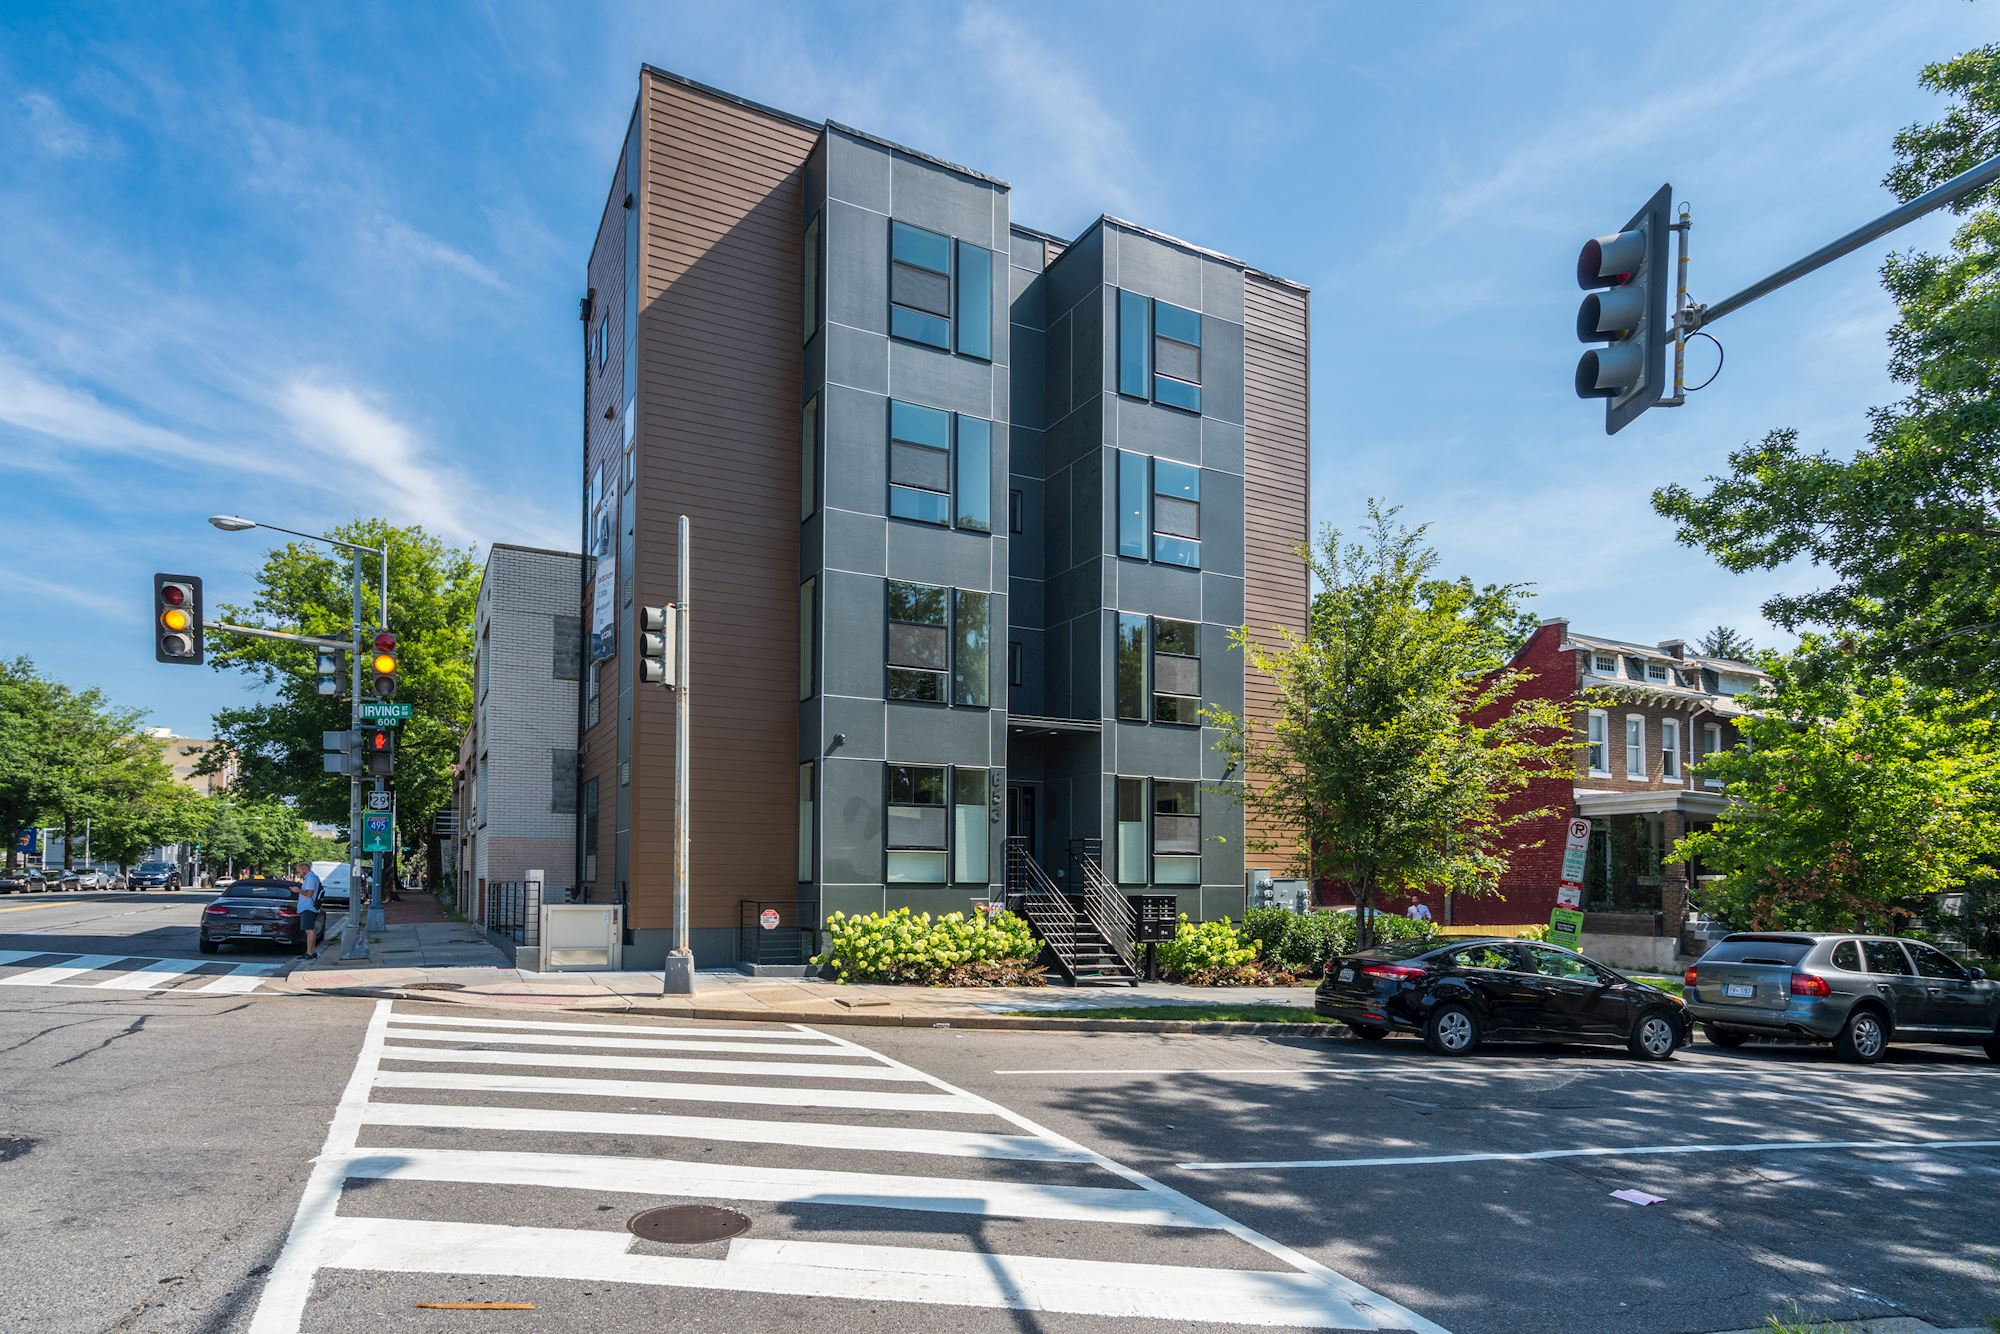 The Whitney - 653 Irving St. NW | Park ViewNOW SELLING | Eight-unit new condominium constructionhttps://thewhitneydc.com/